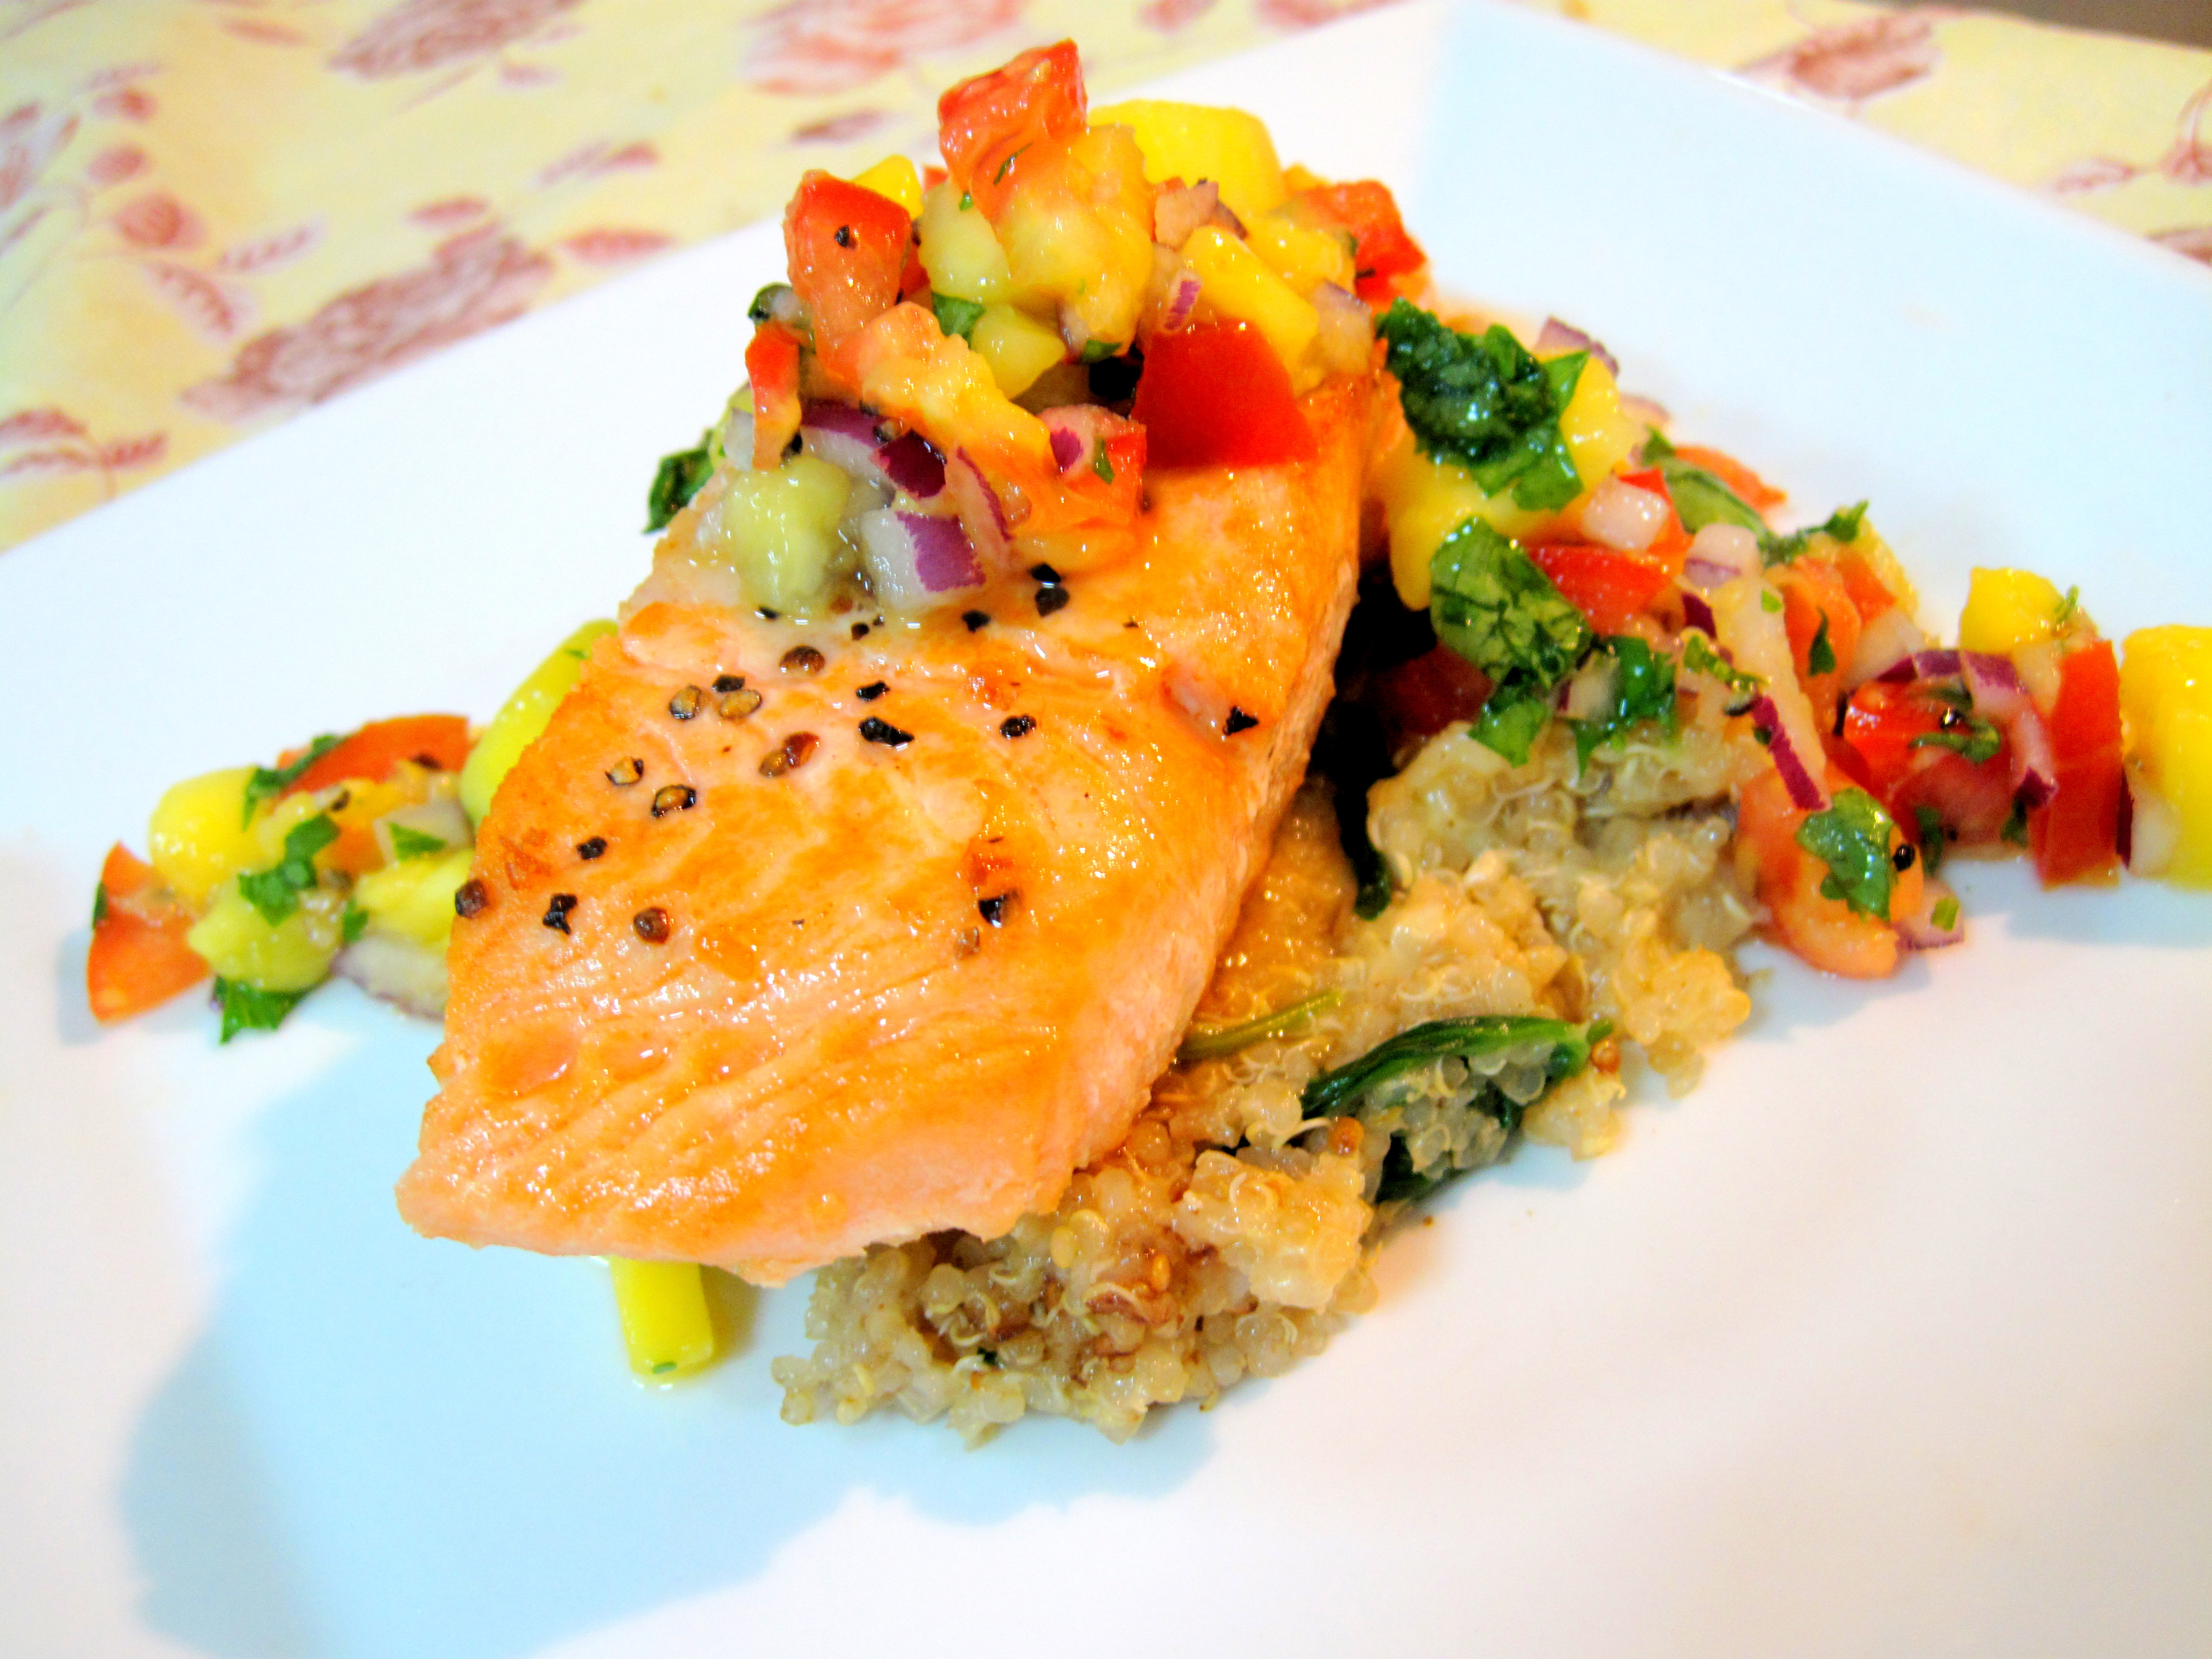 Pan Fried Salmon, Spinach Quinoa, and Mango Salsa – Kelly Siew Cooks